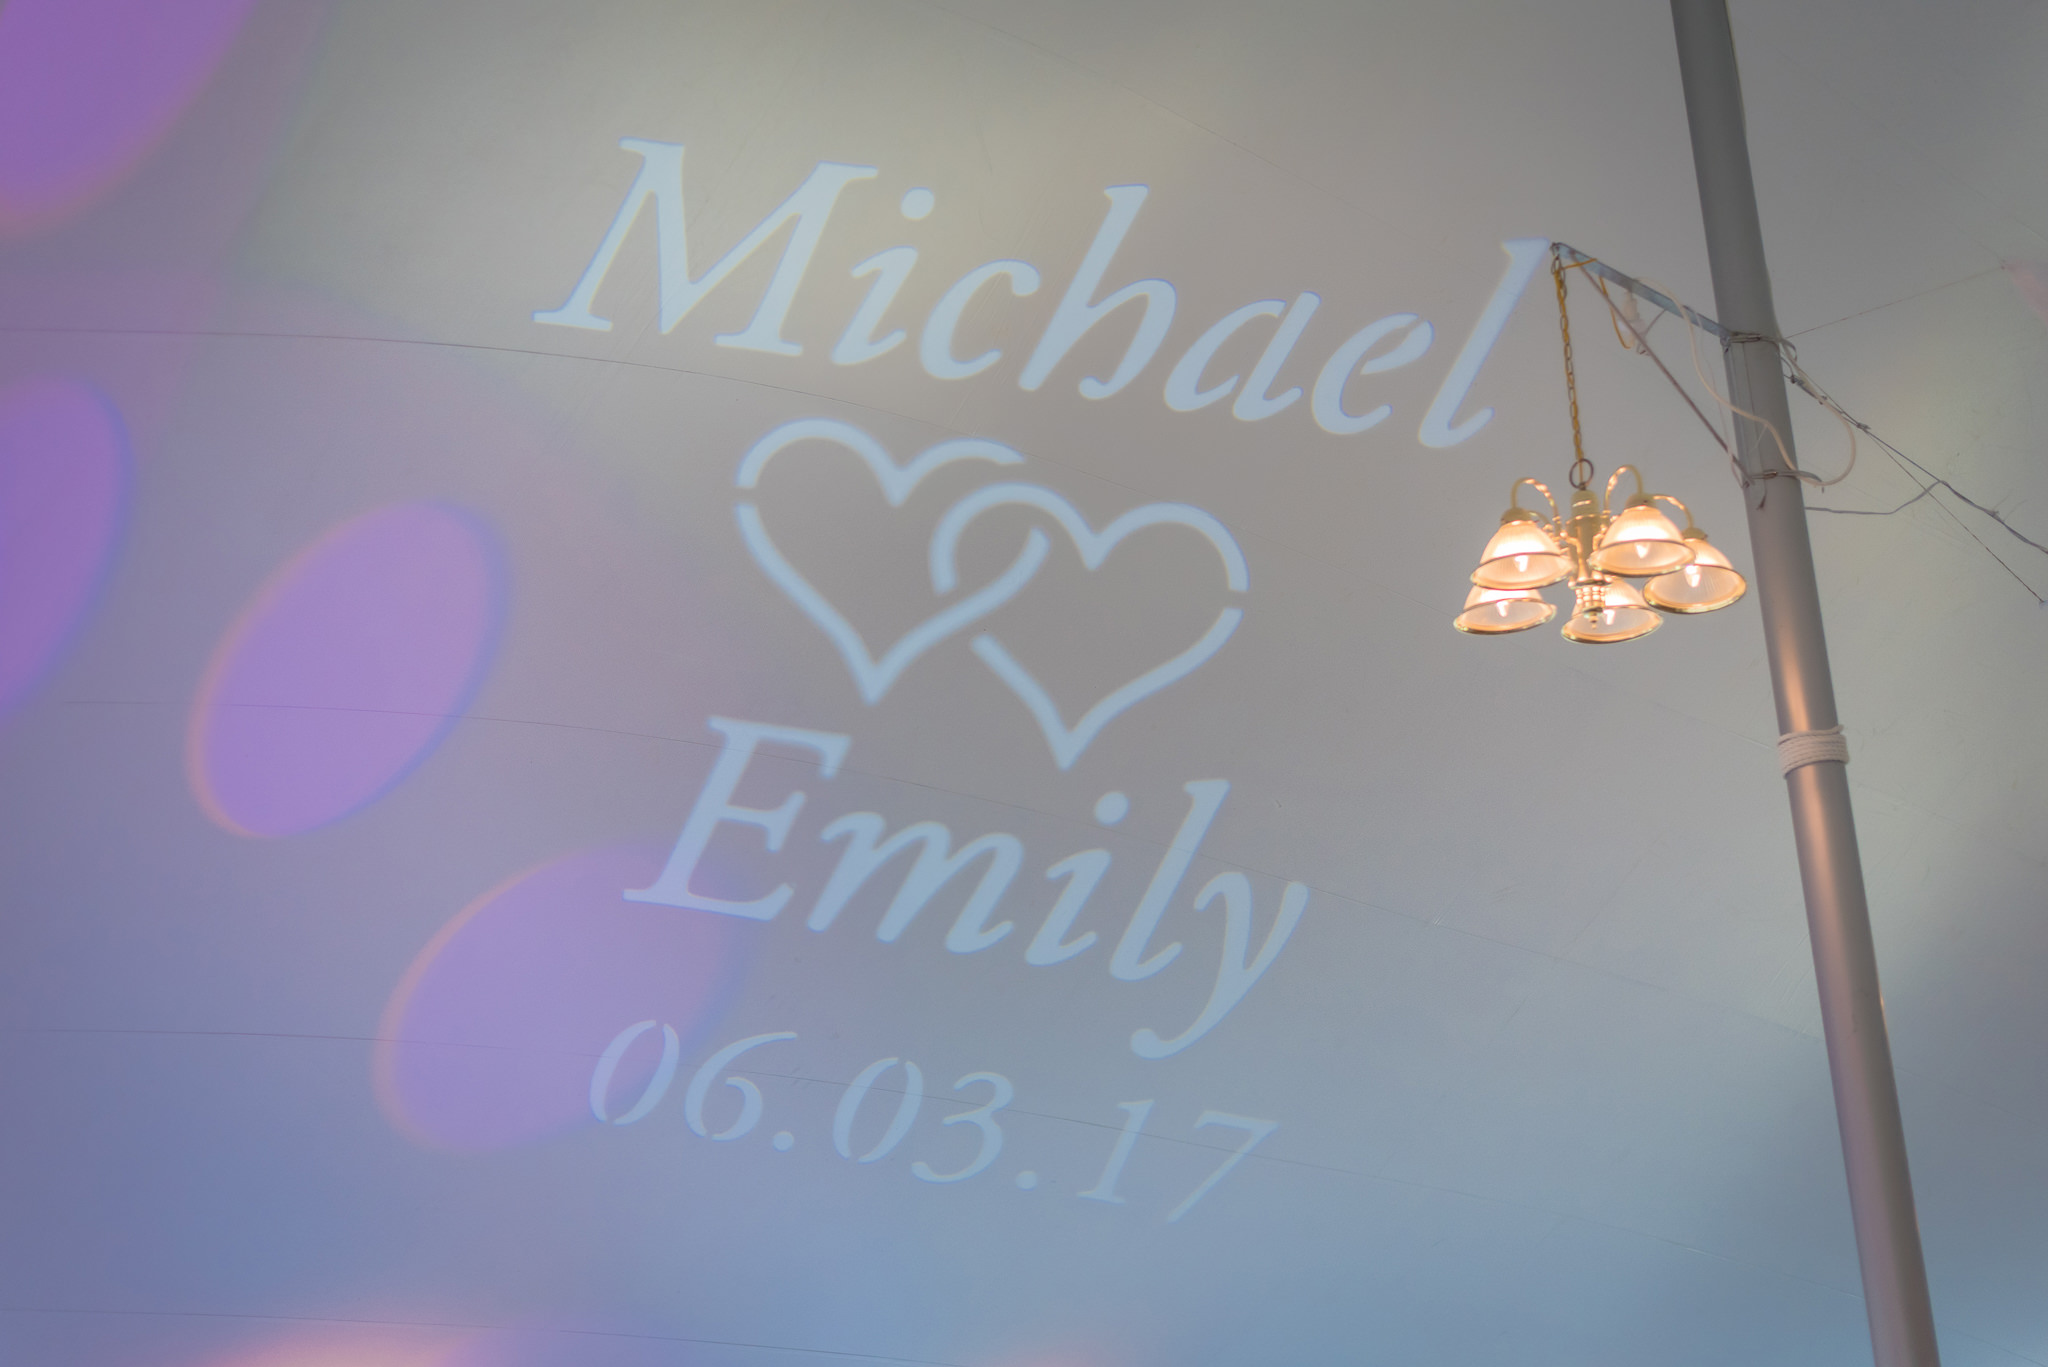 Monogram displayed on the tent ceiling during a wedding reception